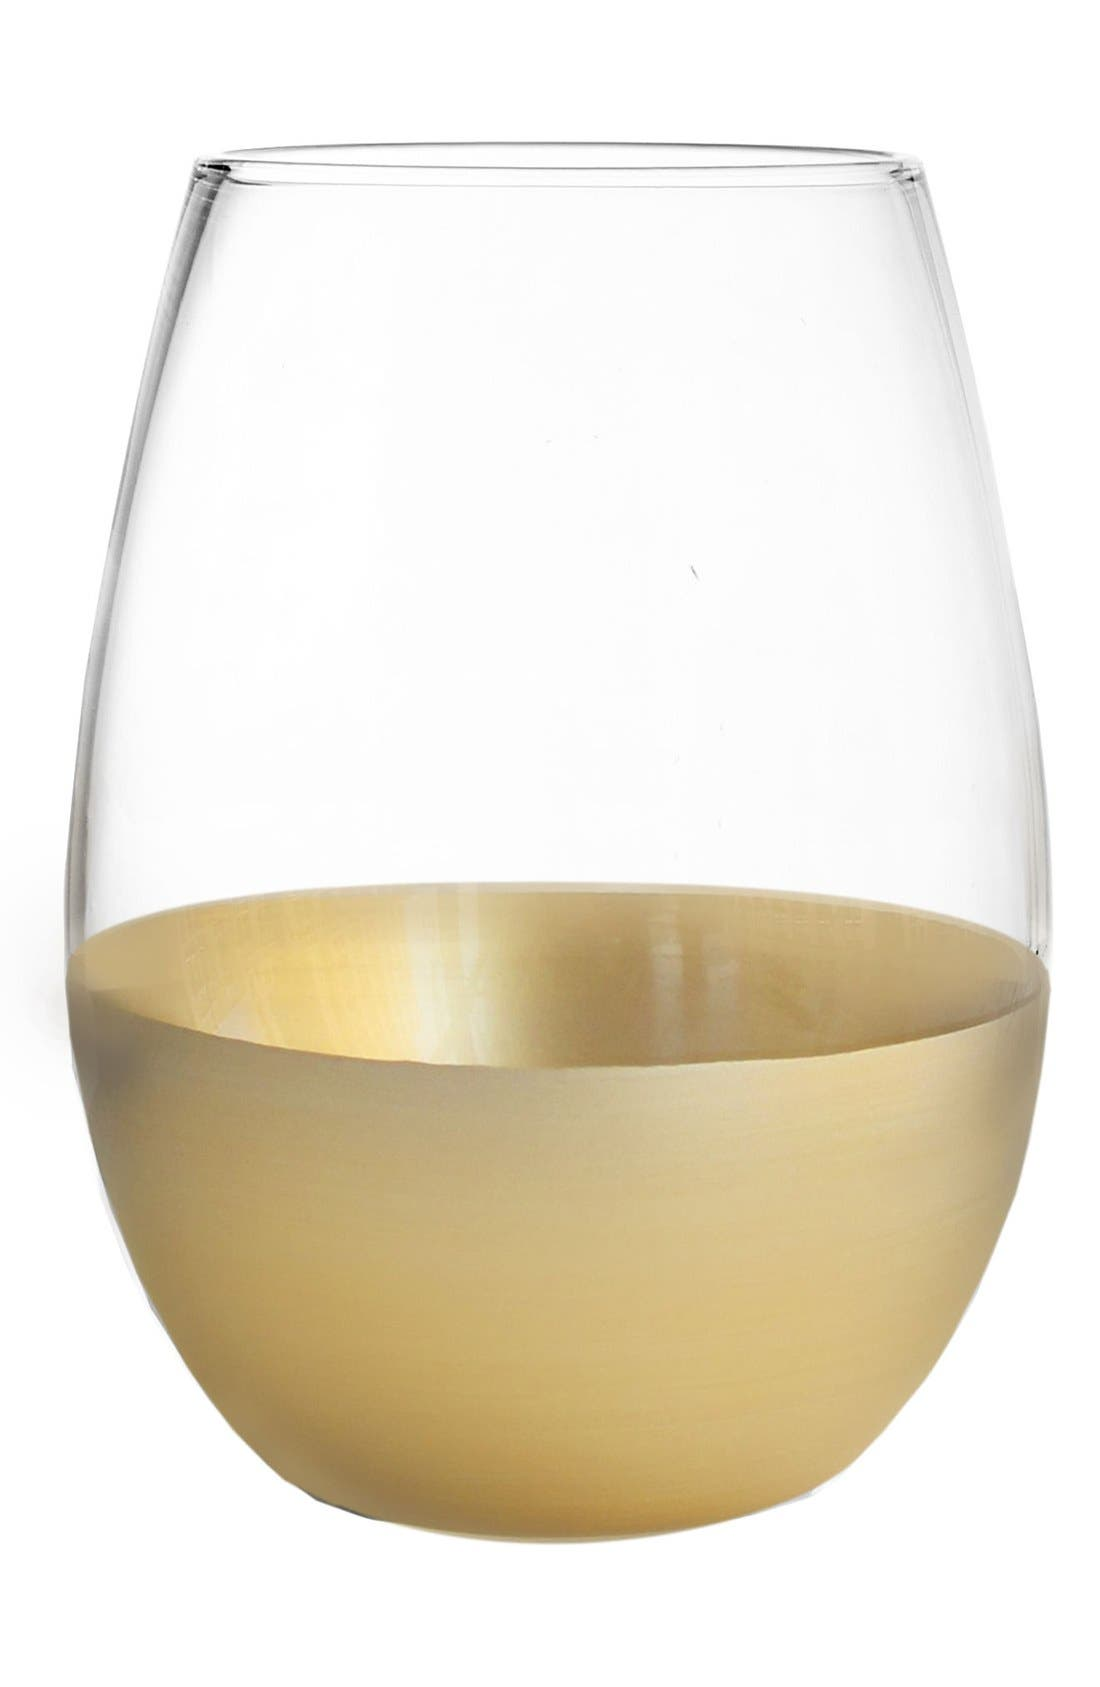 Alternate Image 1 Selected - American Atelier Set of 4 Jane Stemless Wine Glasses